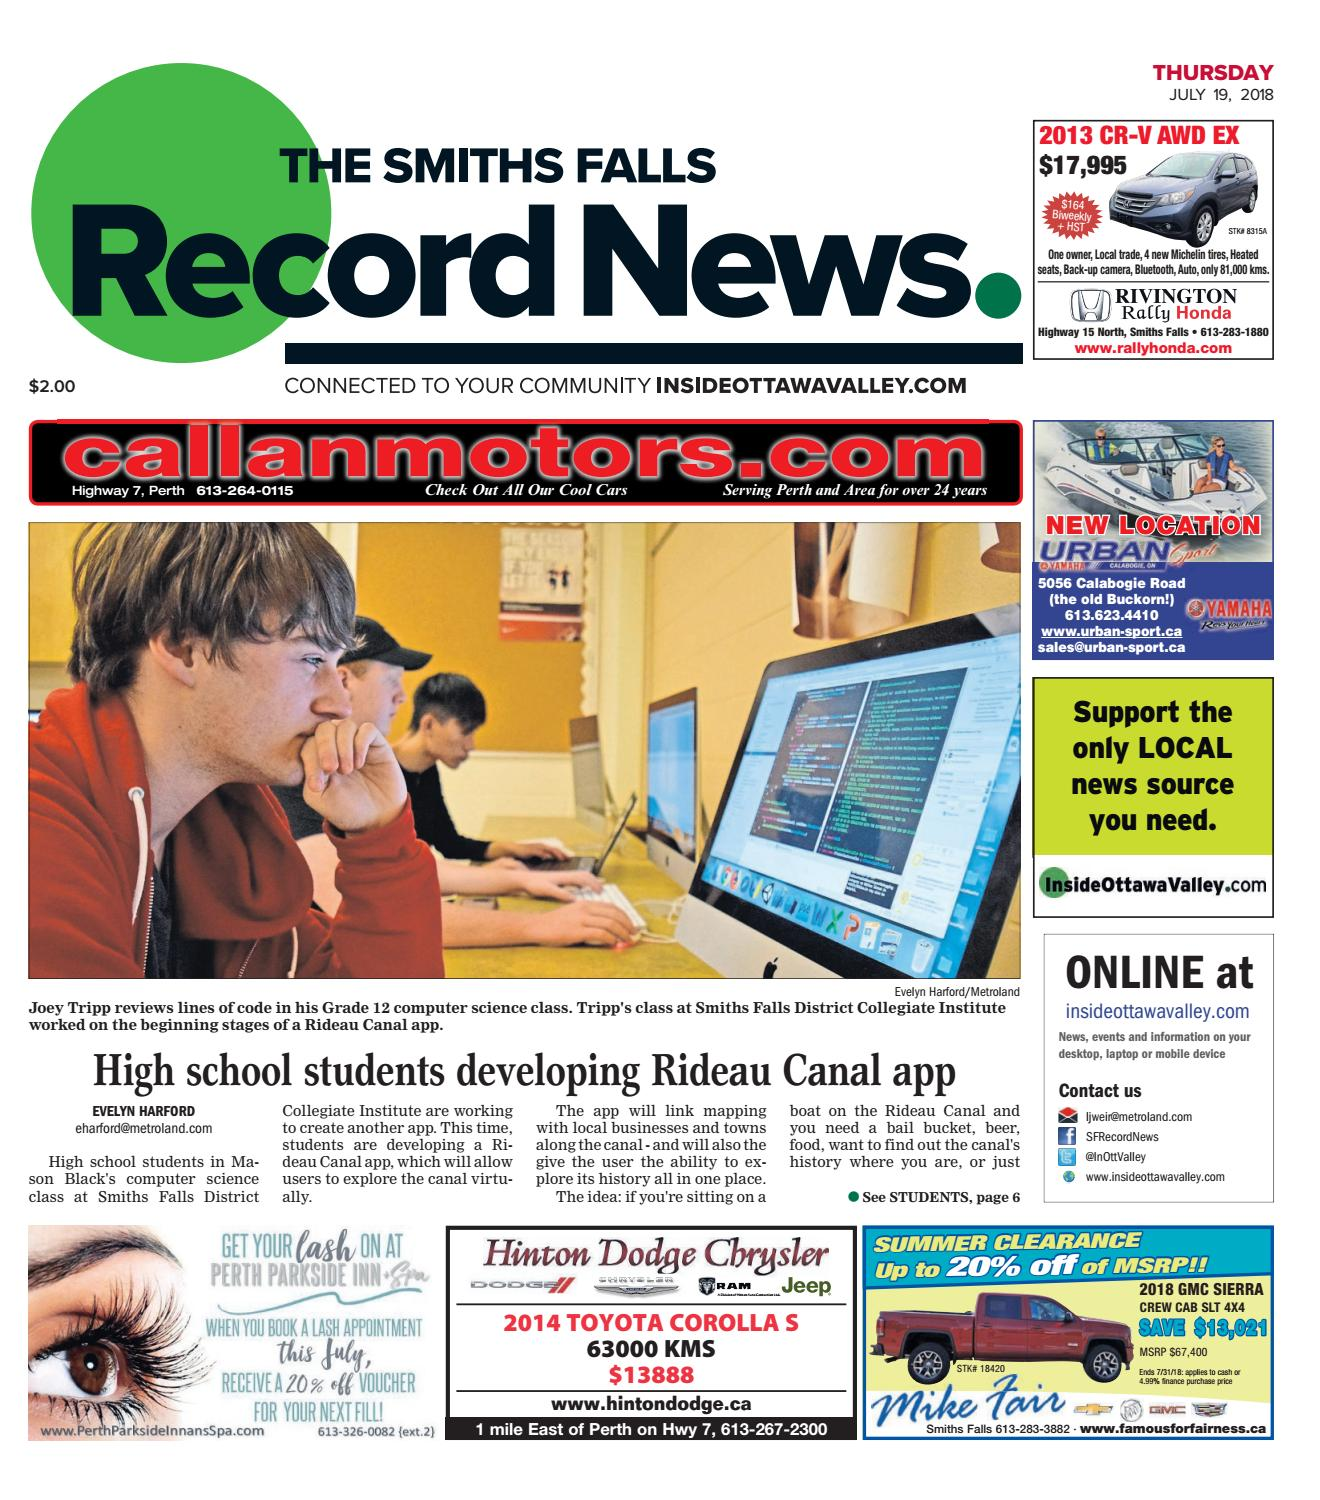 Otv S A 20180719 By Metroland East Smiths Falls Record News Issuu Ford Cmax Solar Energi Concept Using The Sun To Charge Electric Car